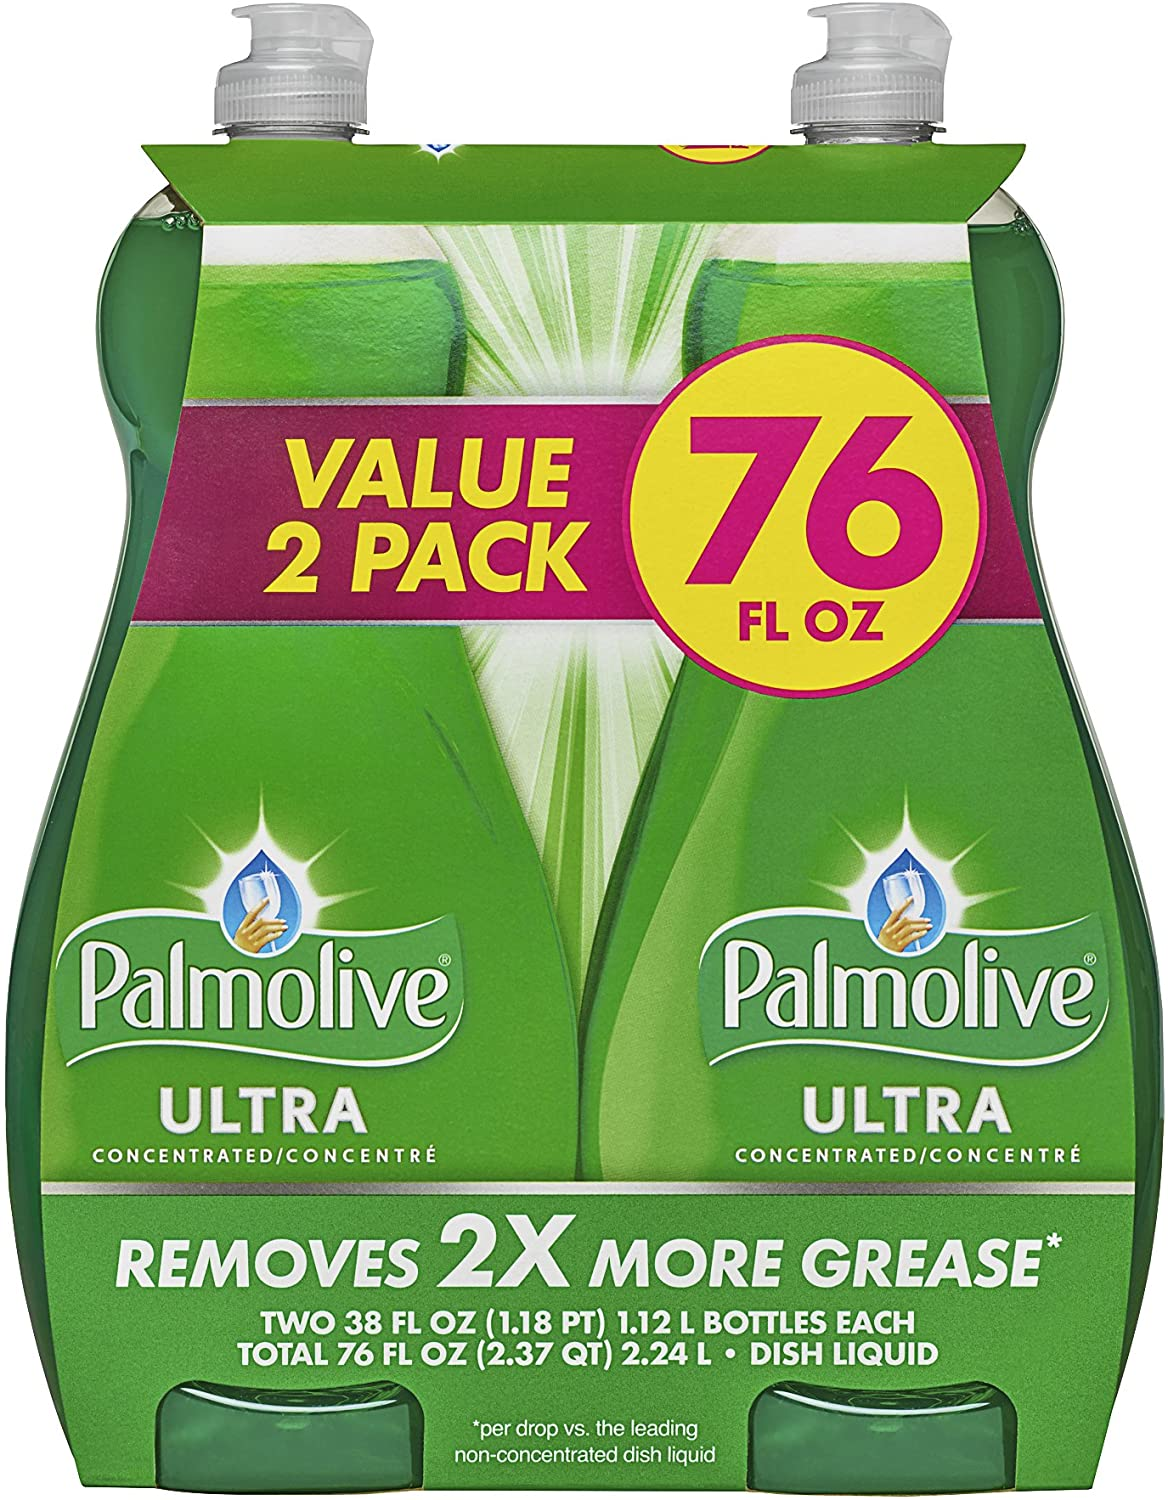 Palmolive Ultra Liquid DishSoap